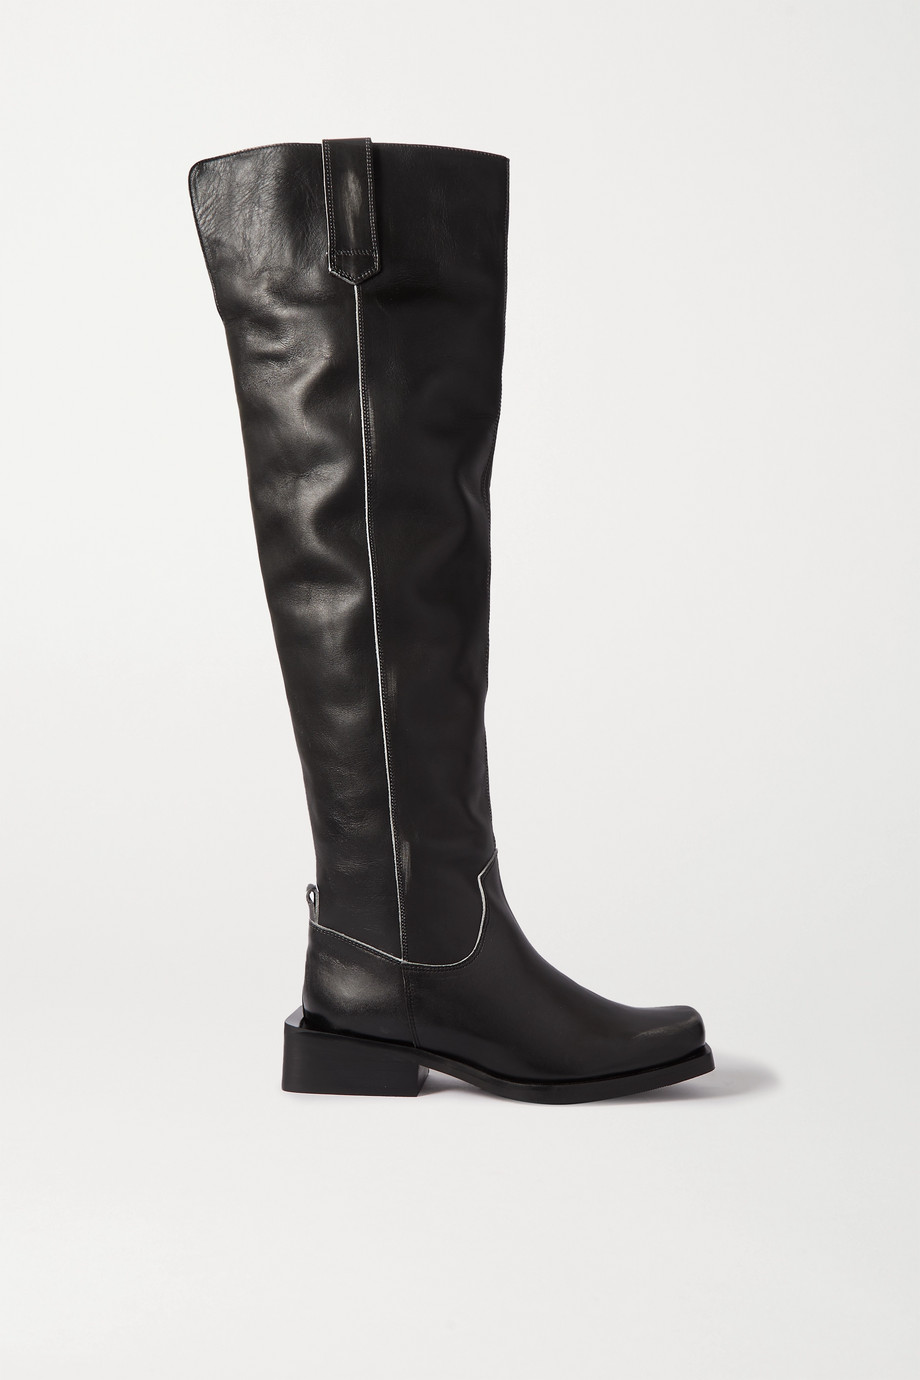 GANNI MC leather over-the-knee boots